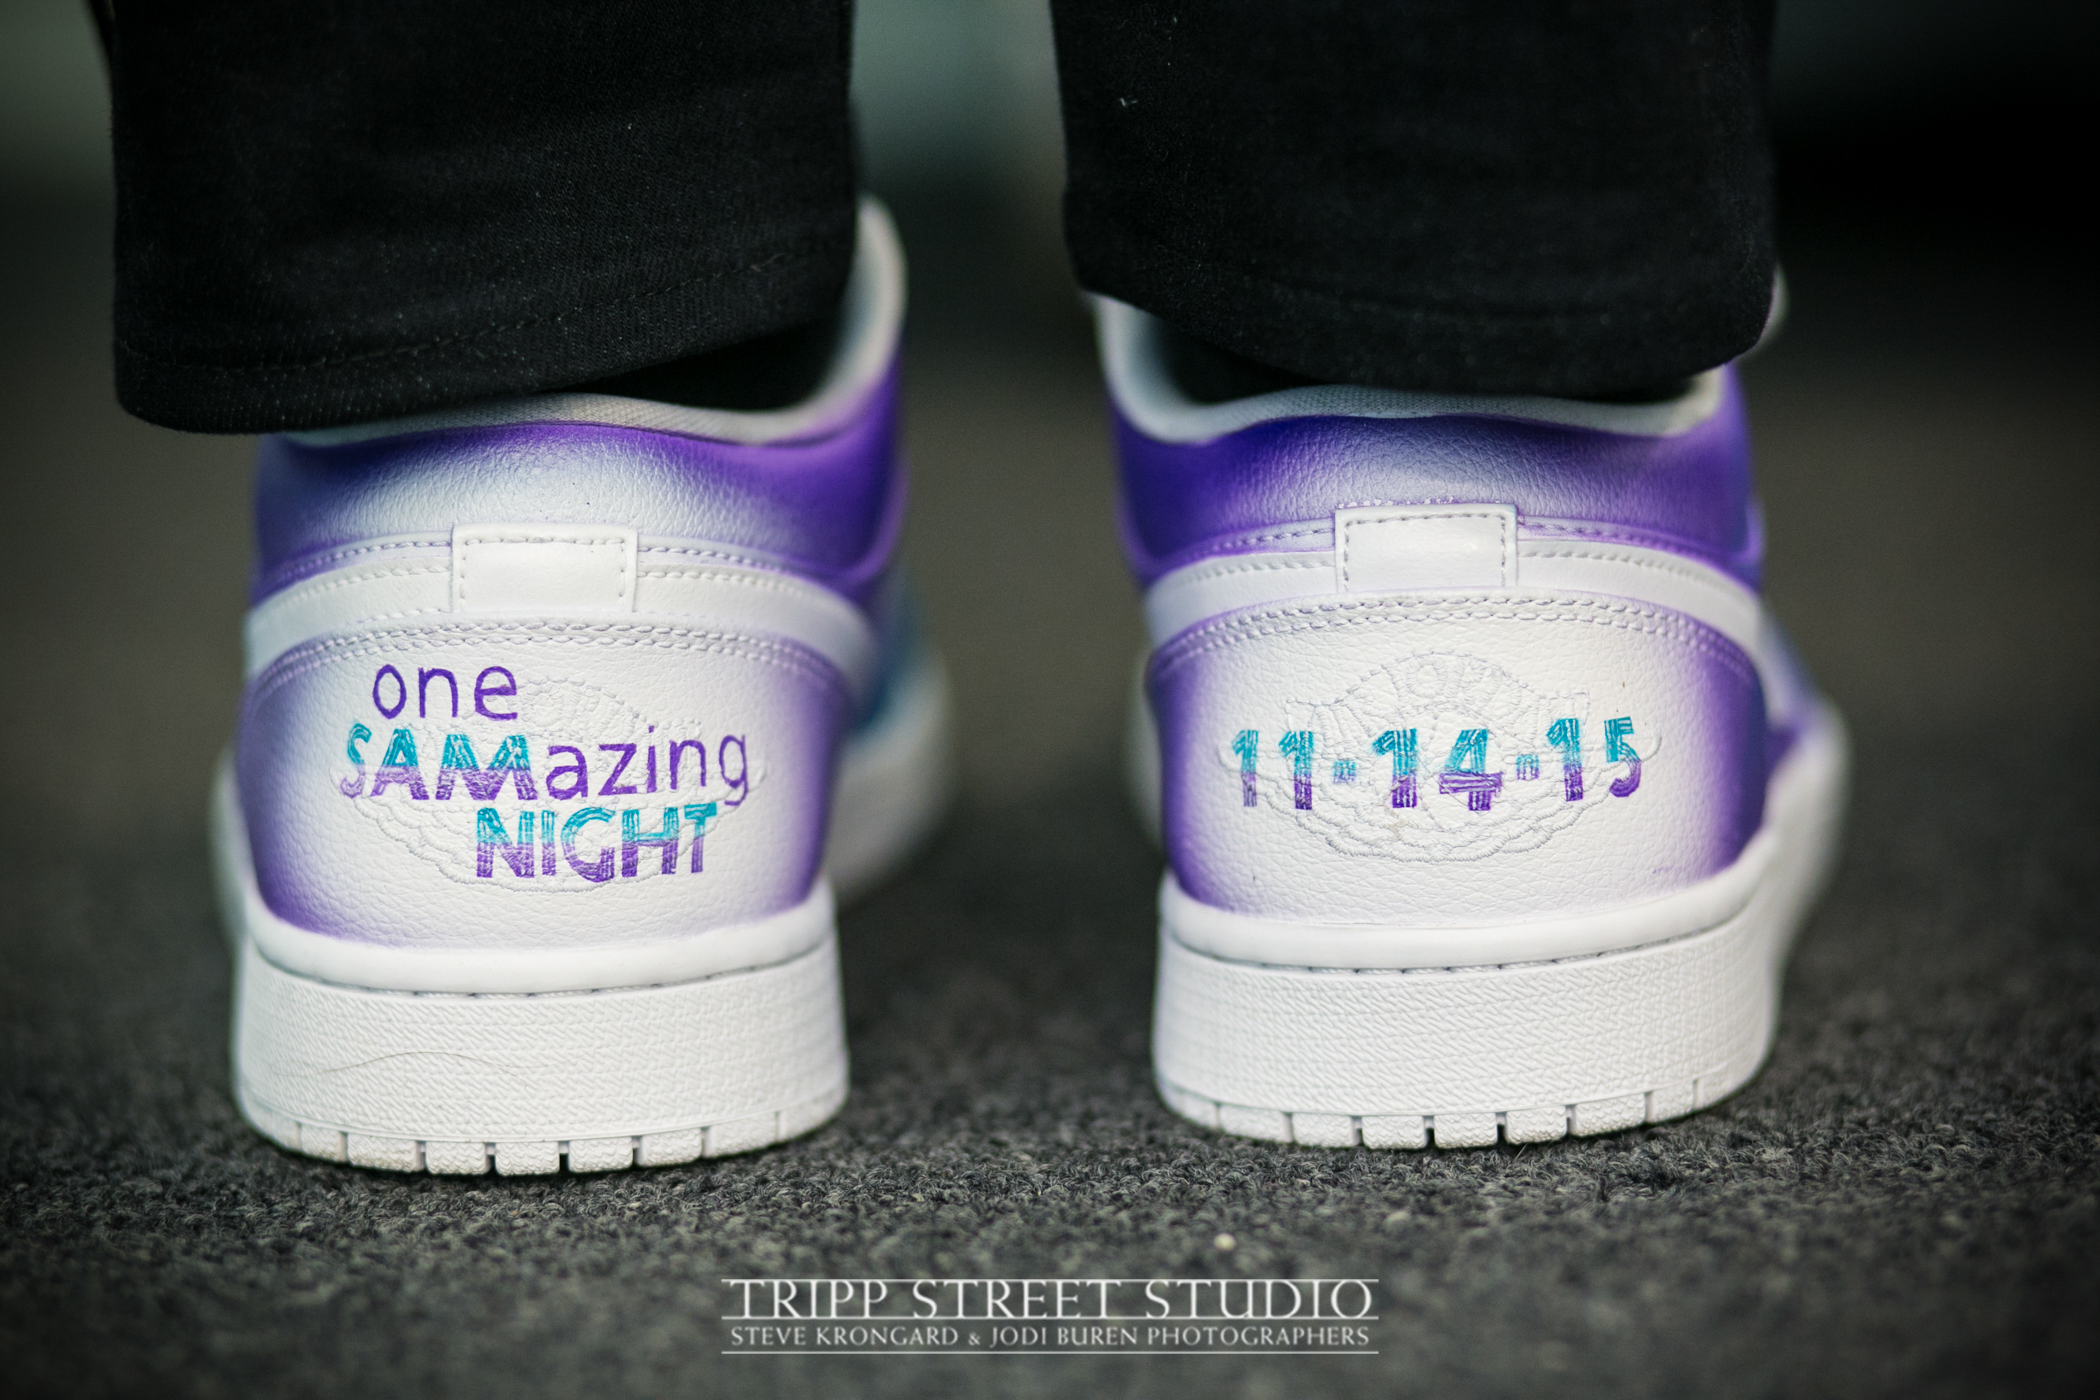 One SAMazing night - Carolyn Dempsey Design